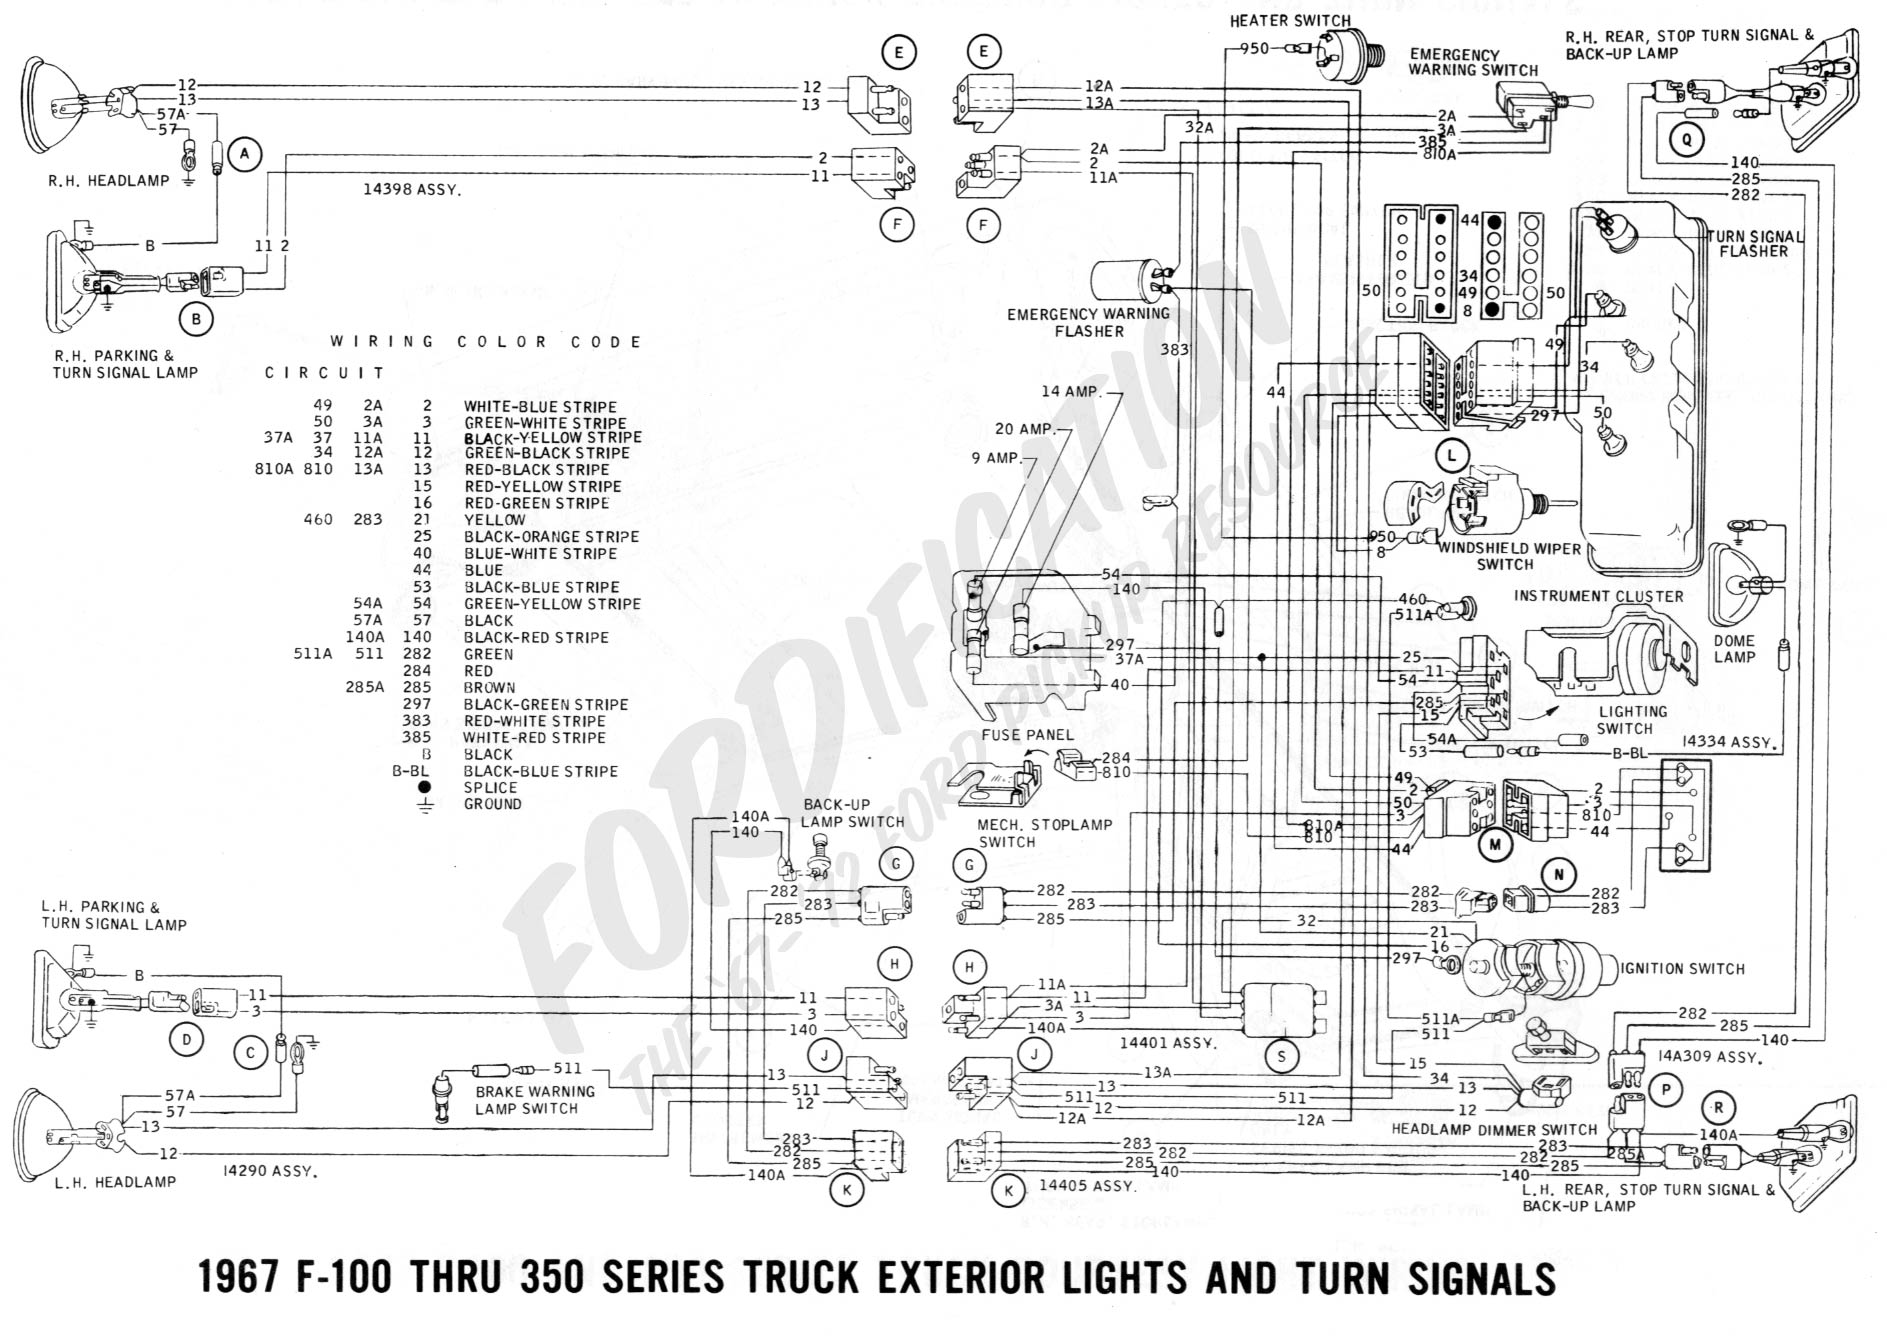 Dodge Dakota Wiring Diagram Internal Regulator Alternator Internally Regulated 1967 F250 Schemes 1968